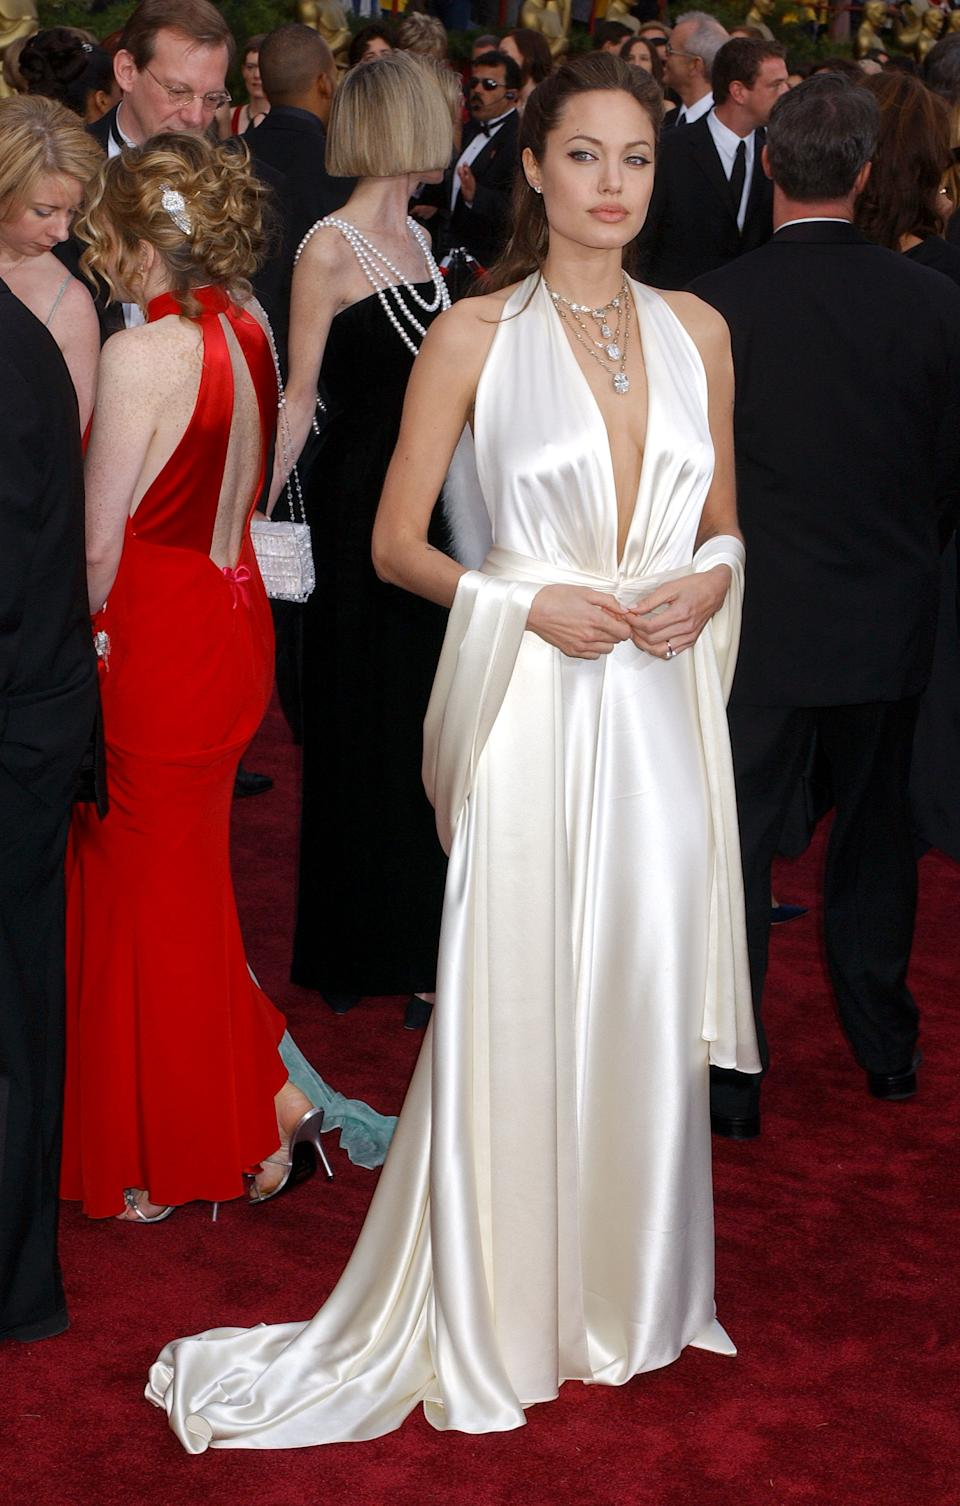 <p>It's a difficult material and colour to pull off, but Jolie Jolie looked angelic in her plunging white satin gown by designer Marc Bouwer.</p>